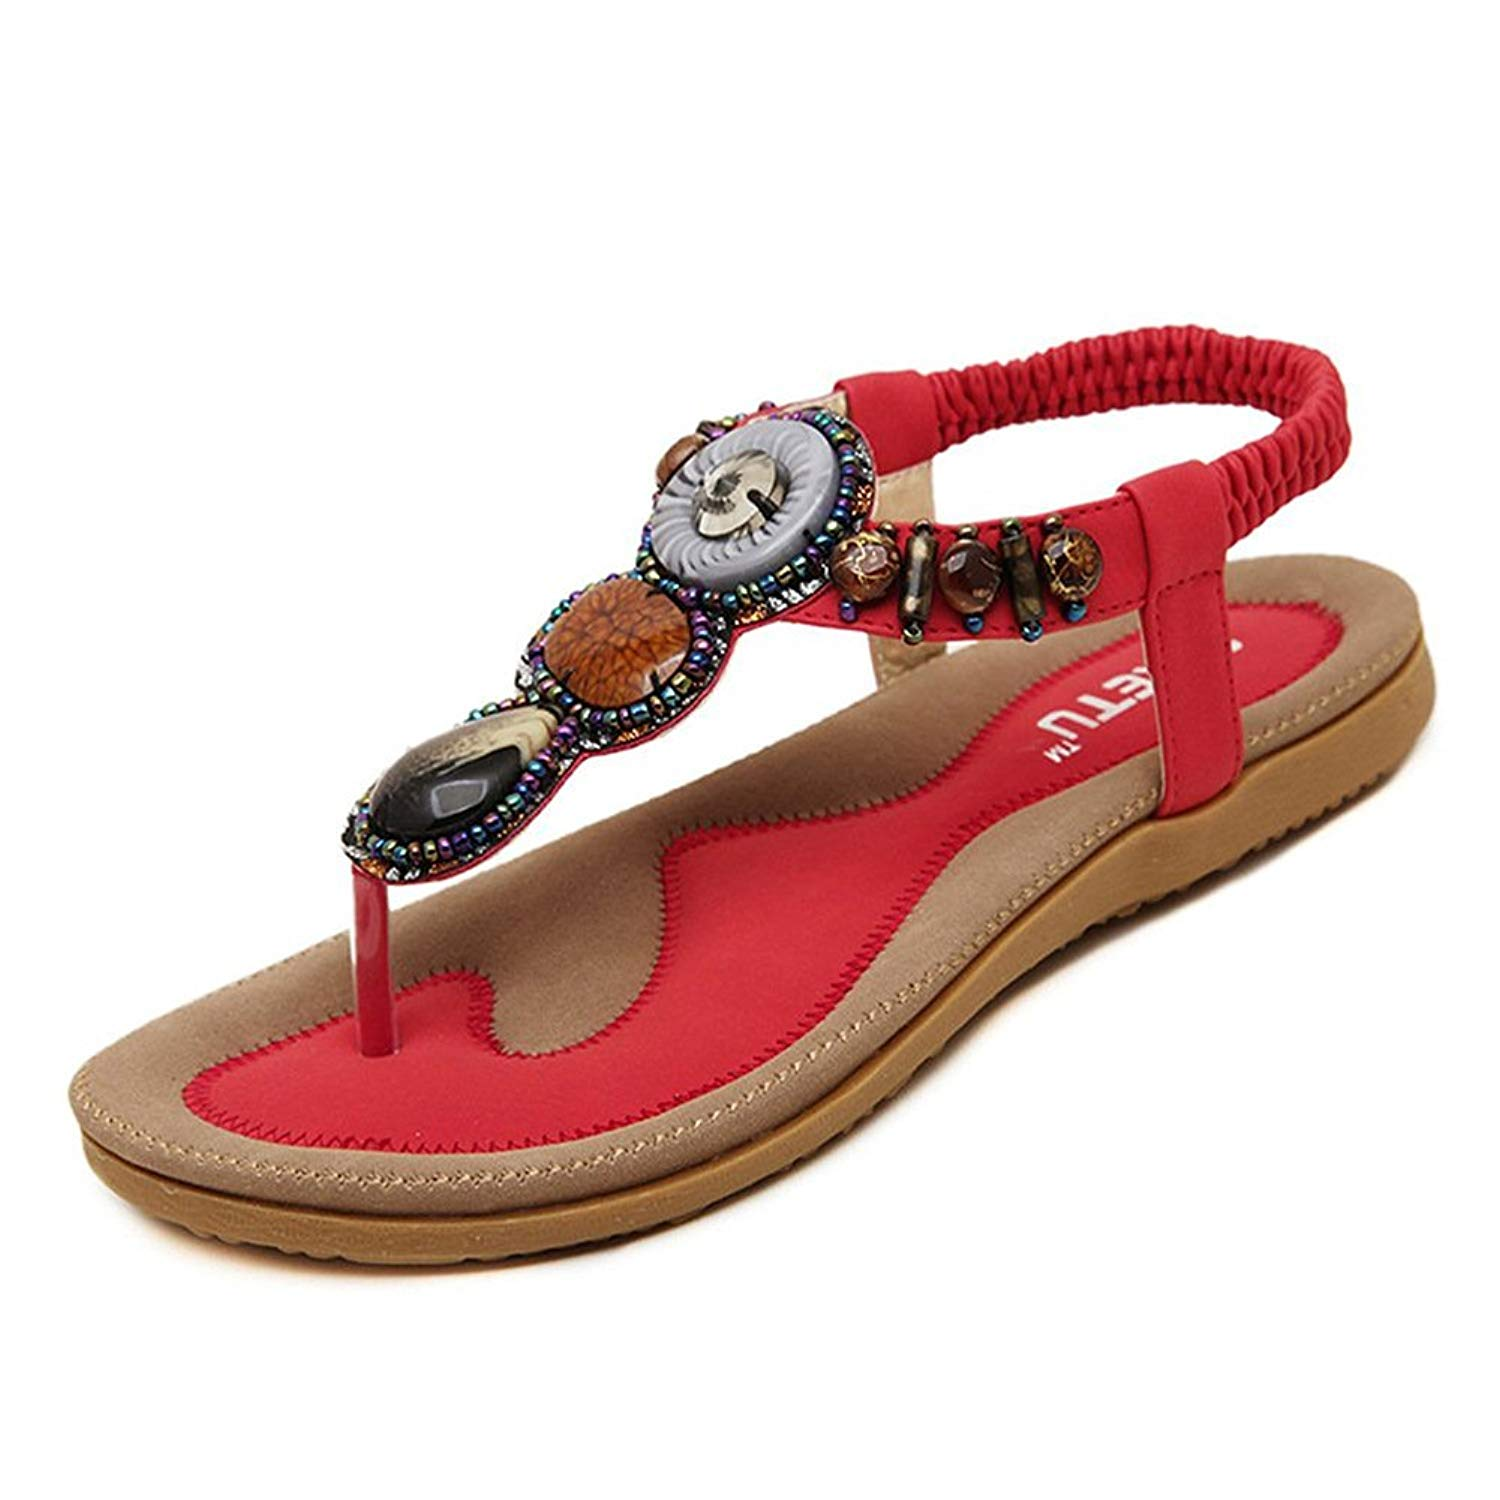 Get Quotations · Women s Summer Bohemian Beaded Ankle Walking Strap Sandals  Size 6 7 8 9 Casual Flip Flops 3309dbc3738